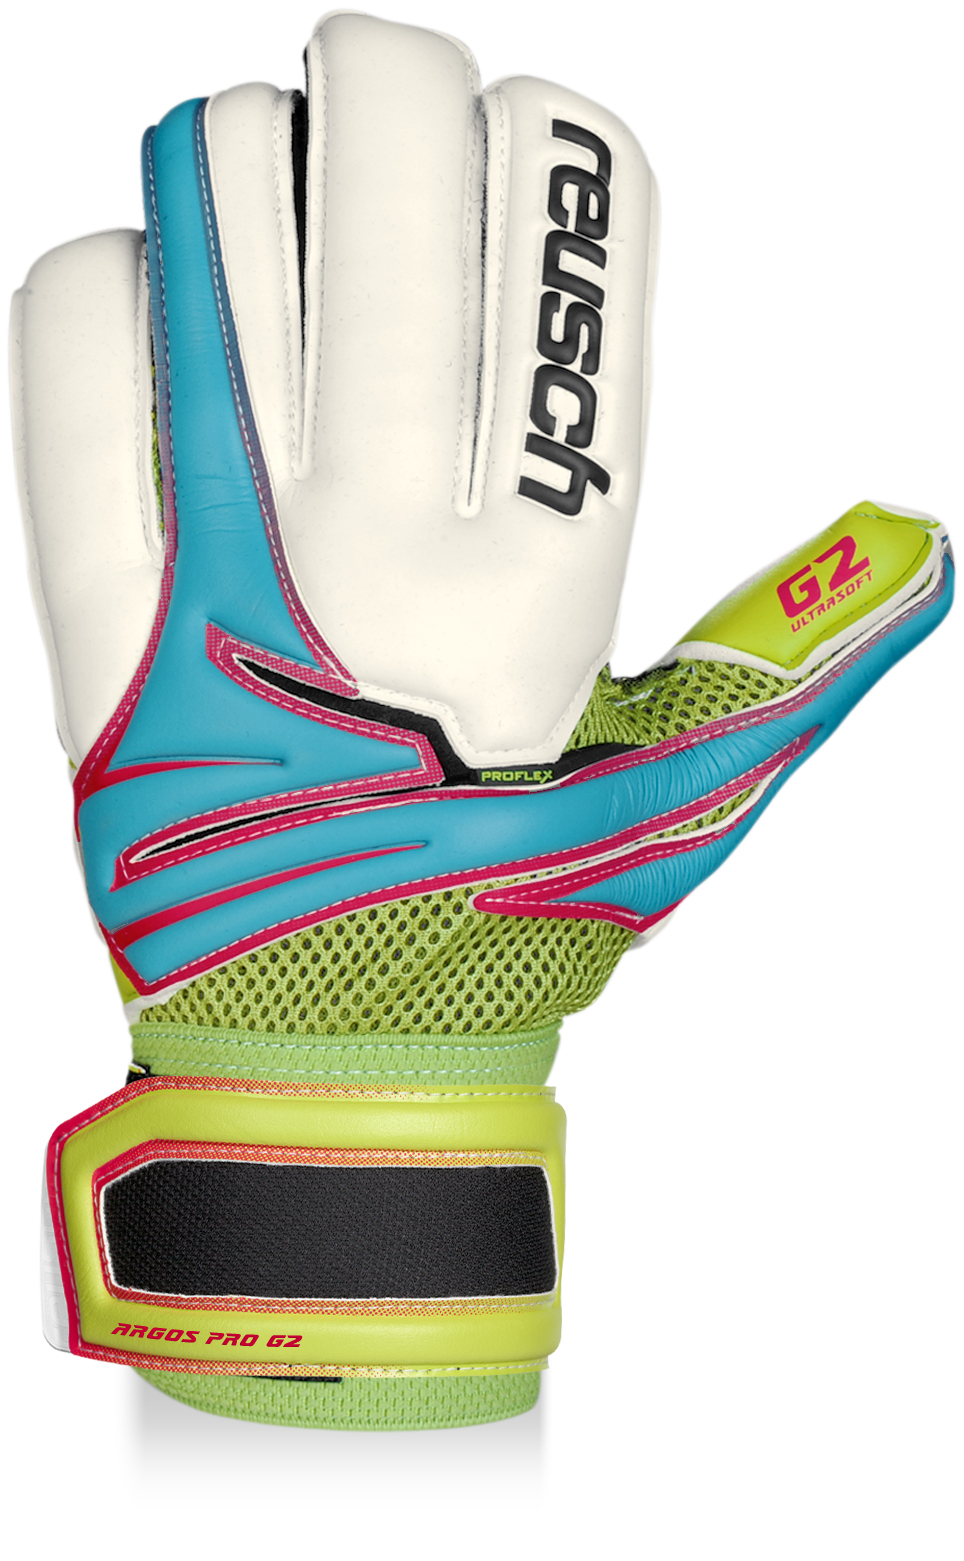 Reusch Argos Pro G2 Goalkeeper Gloves (blue)